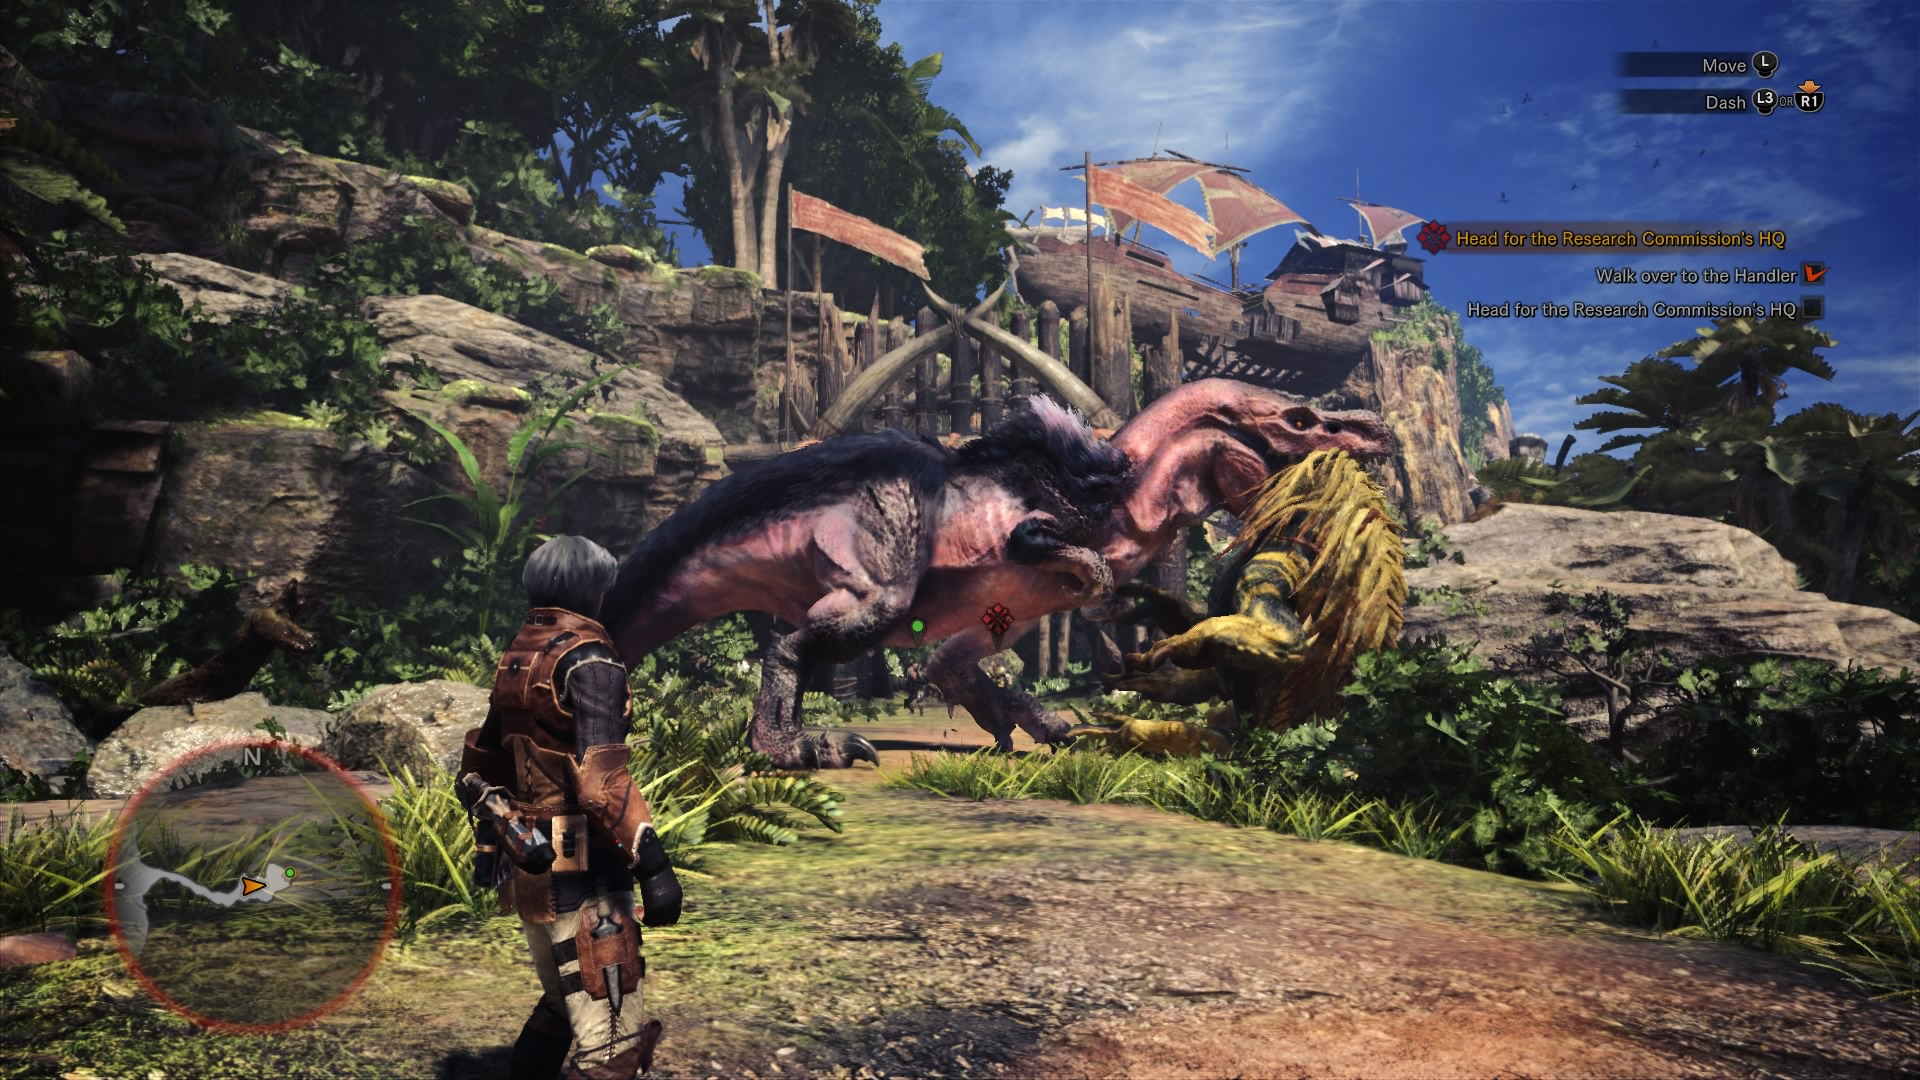 Monster Hunter: World Is The Series' Most Approachable Game